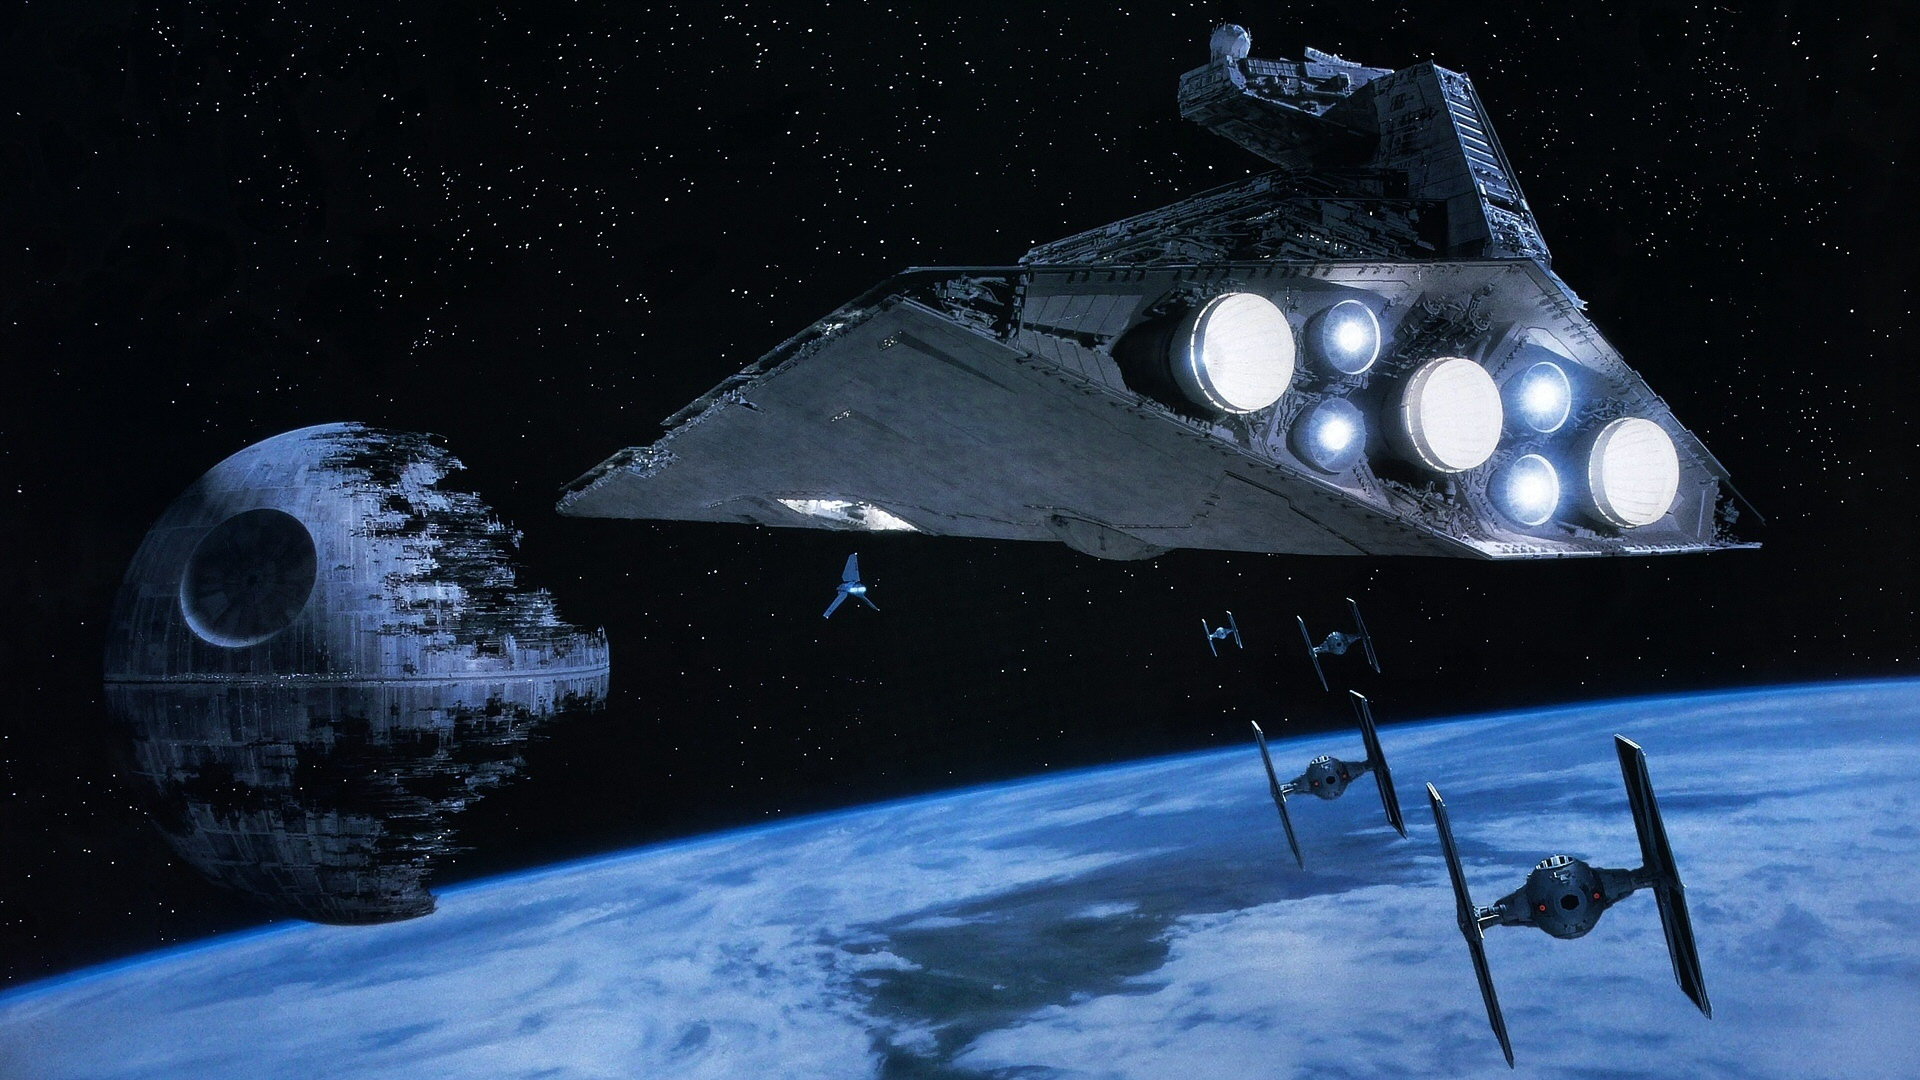 star wars wallpapers collection wallpaper largest 1920x1080 1920x1080